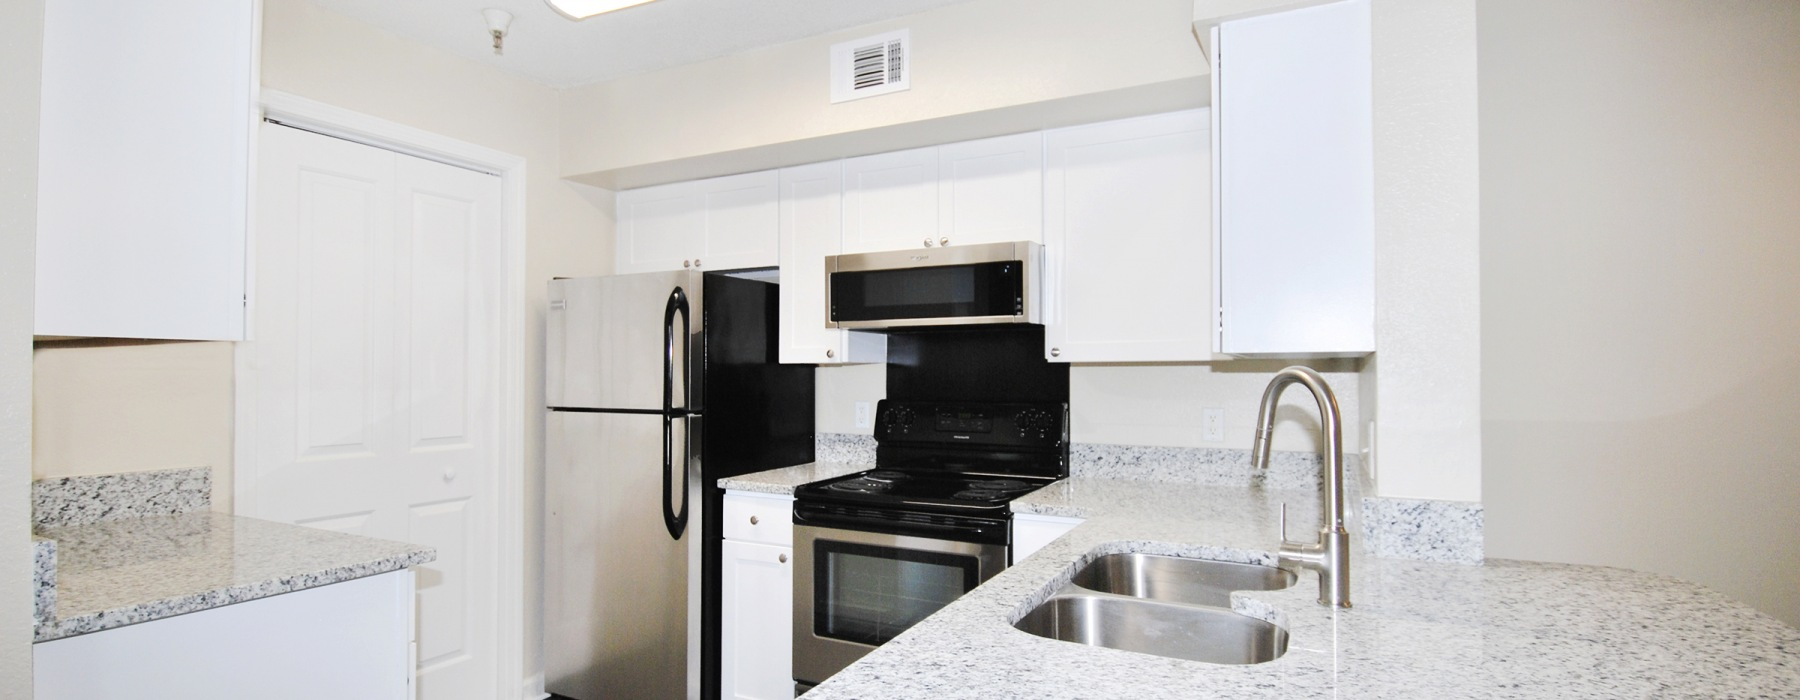 Renovated kitchens with granite countertops